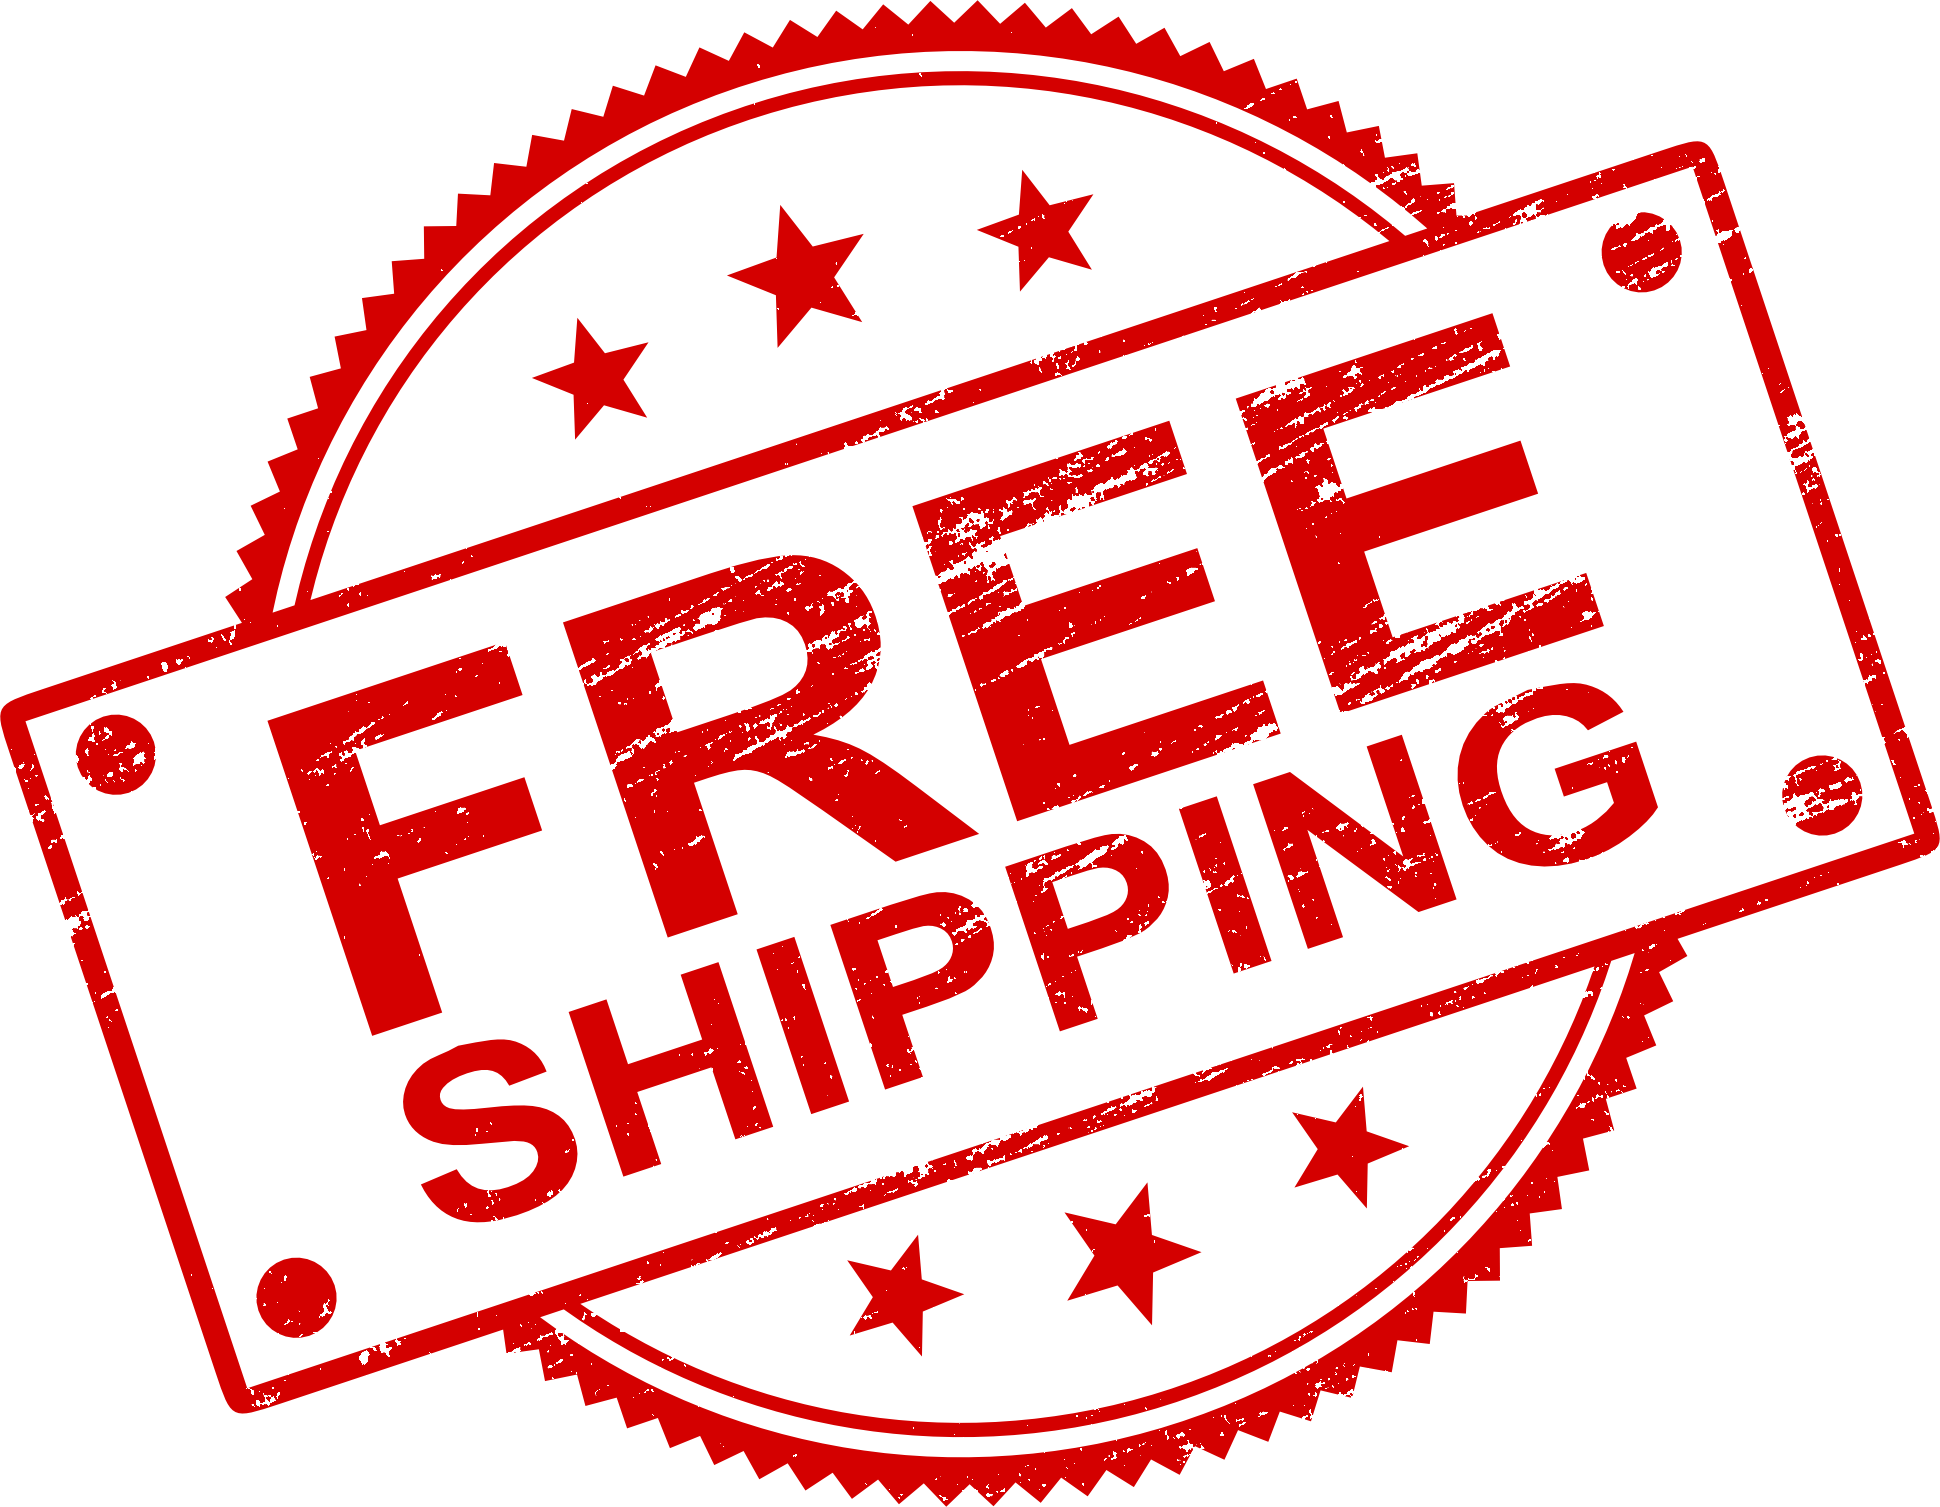 Free Download Png And Vector: 4 Free Shipping Stamp Vector (PNG Transparent, SVG